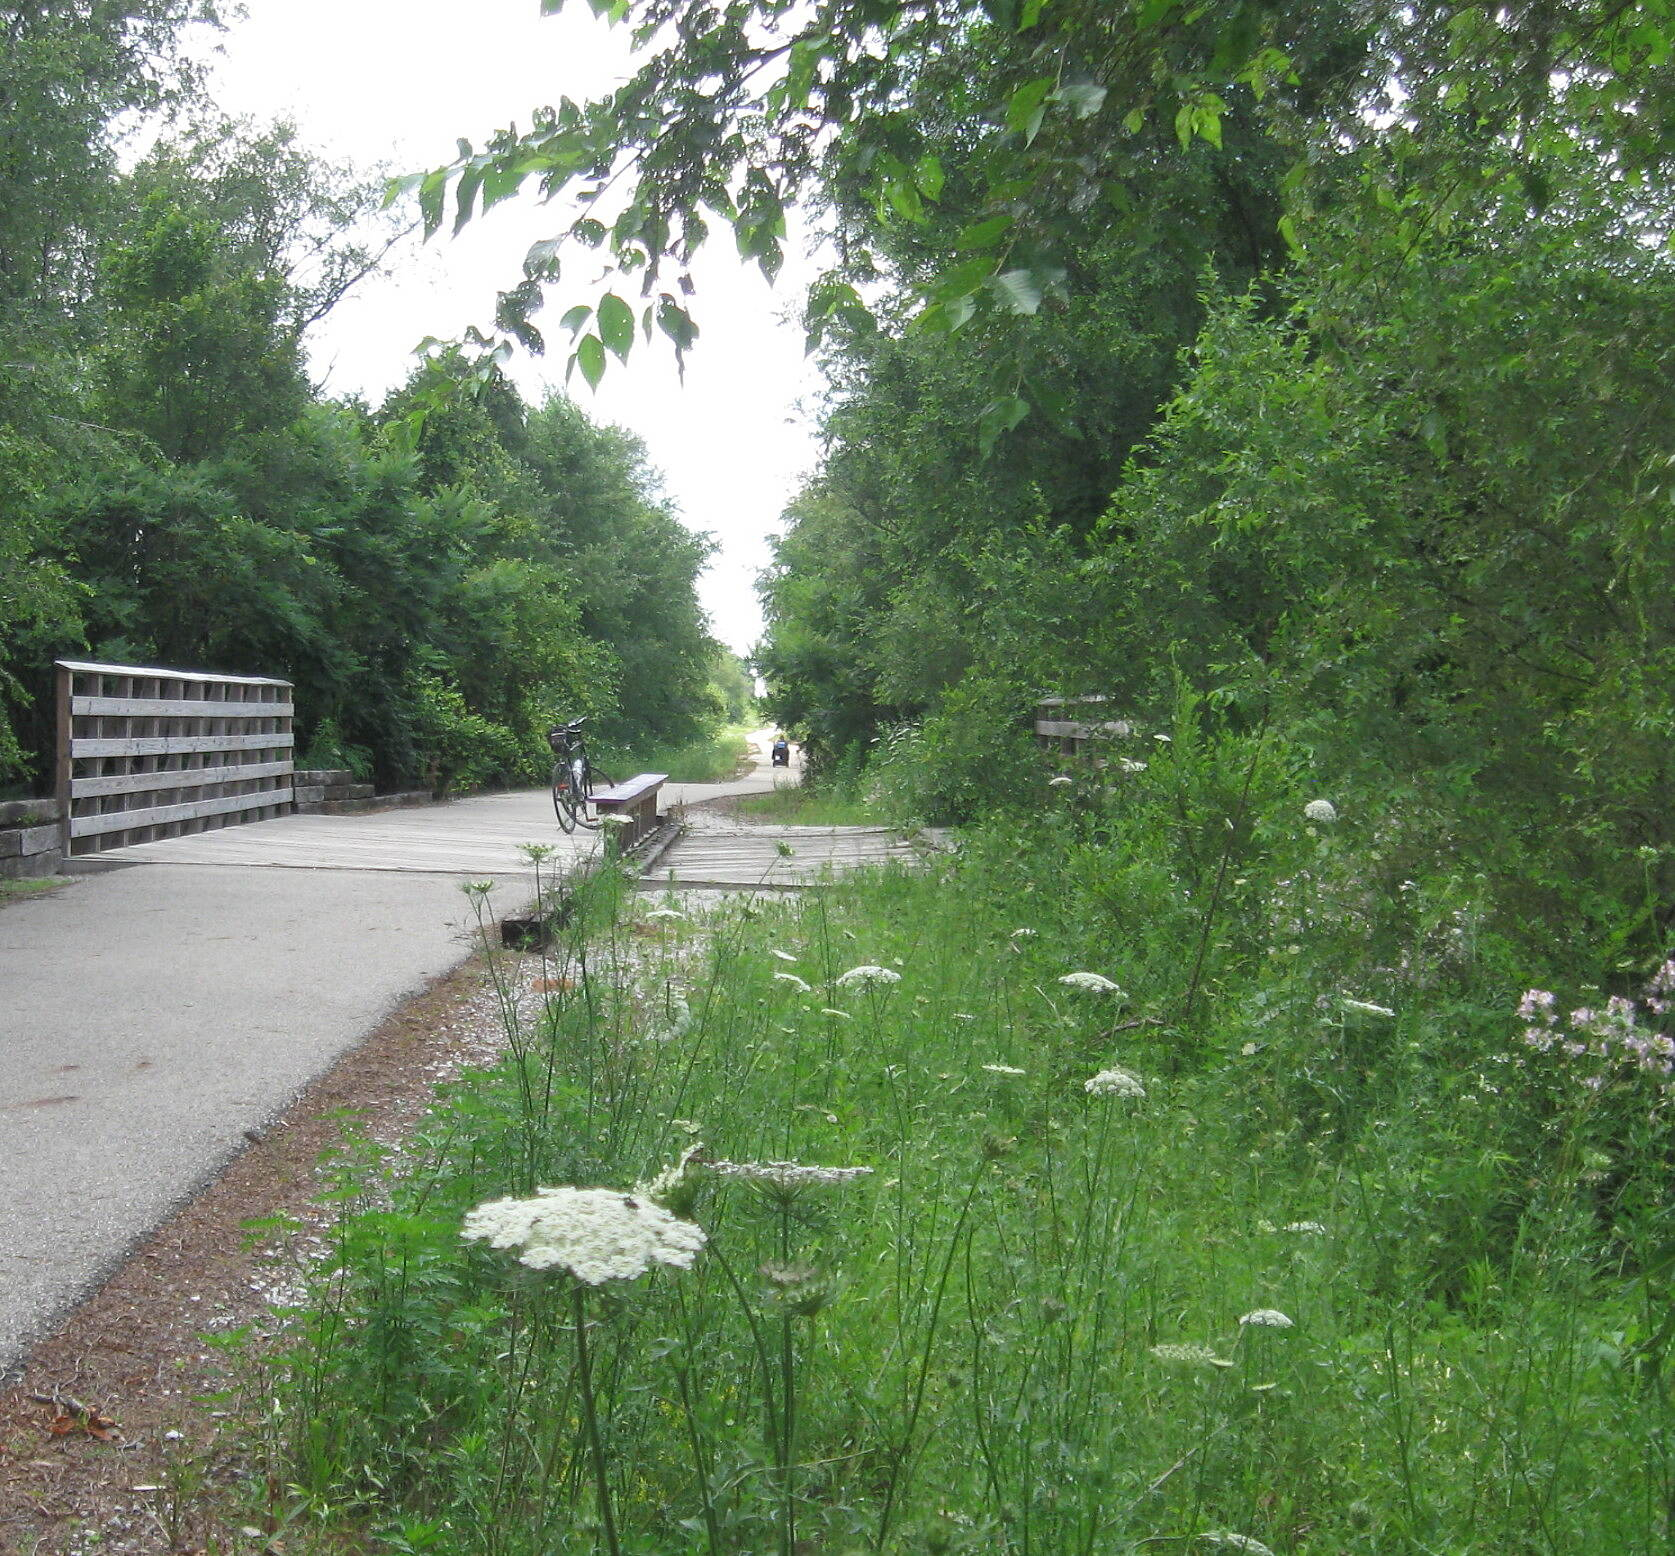 North Judson Erie Trail Bridge